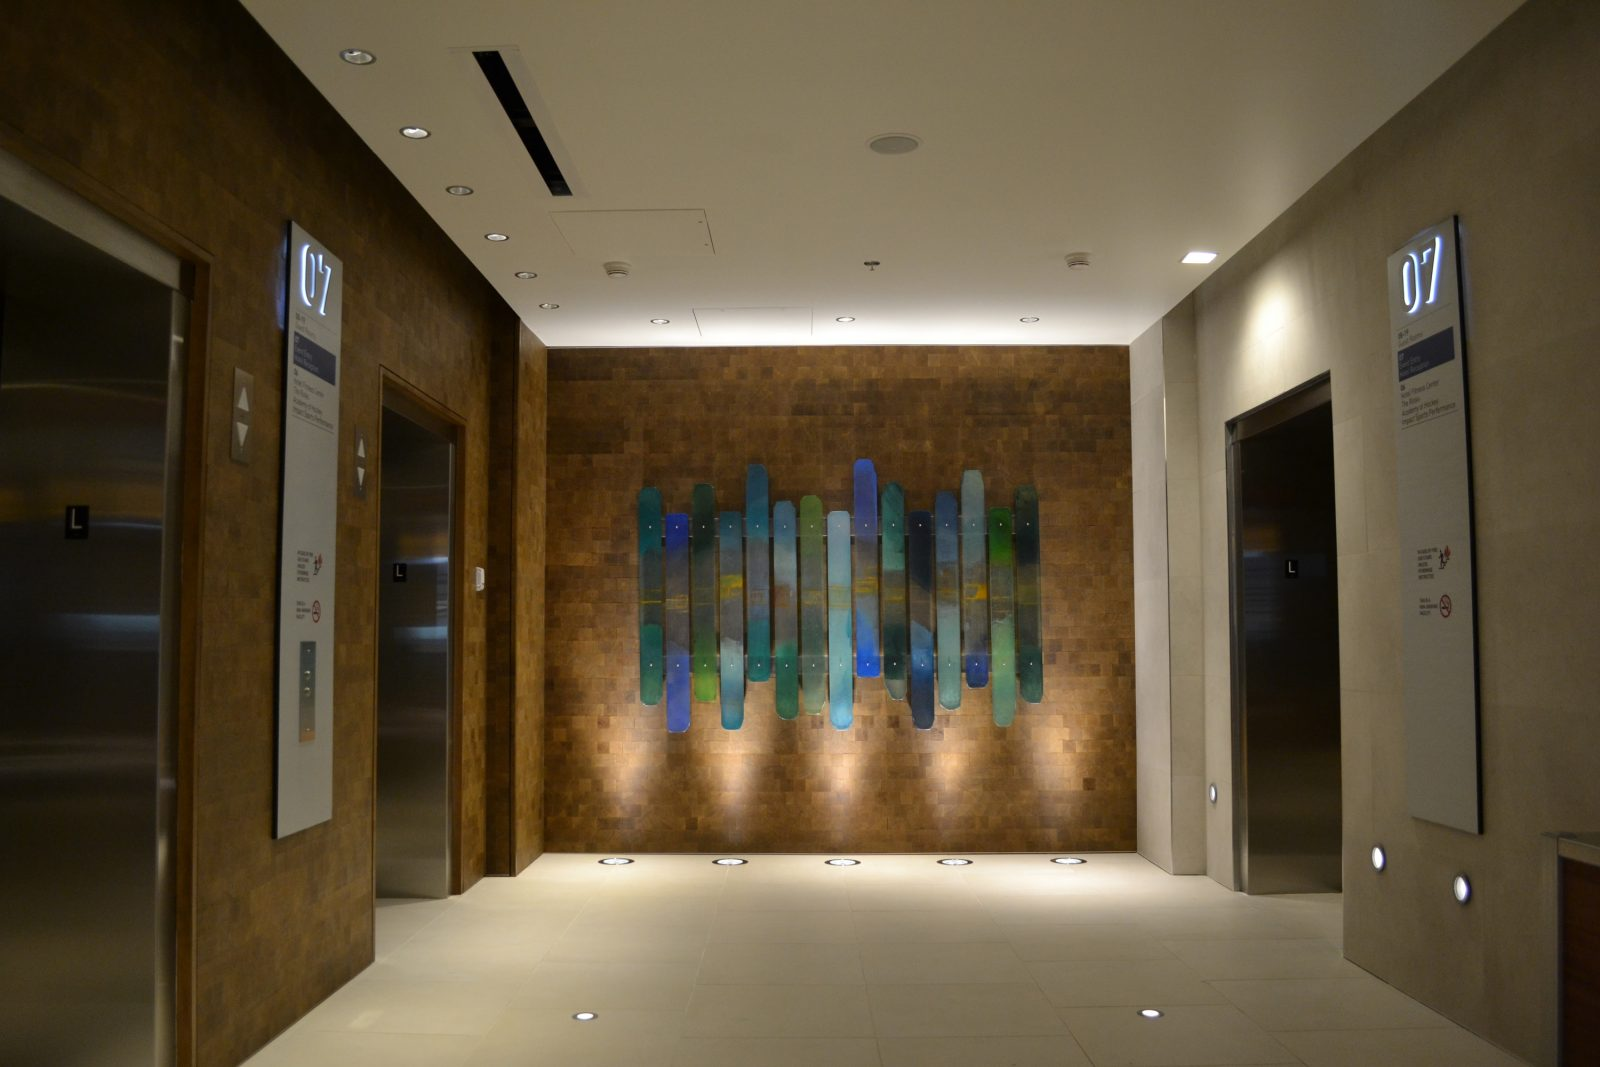 abstract artwork on the wall of a marriott hotel